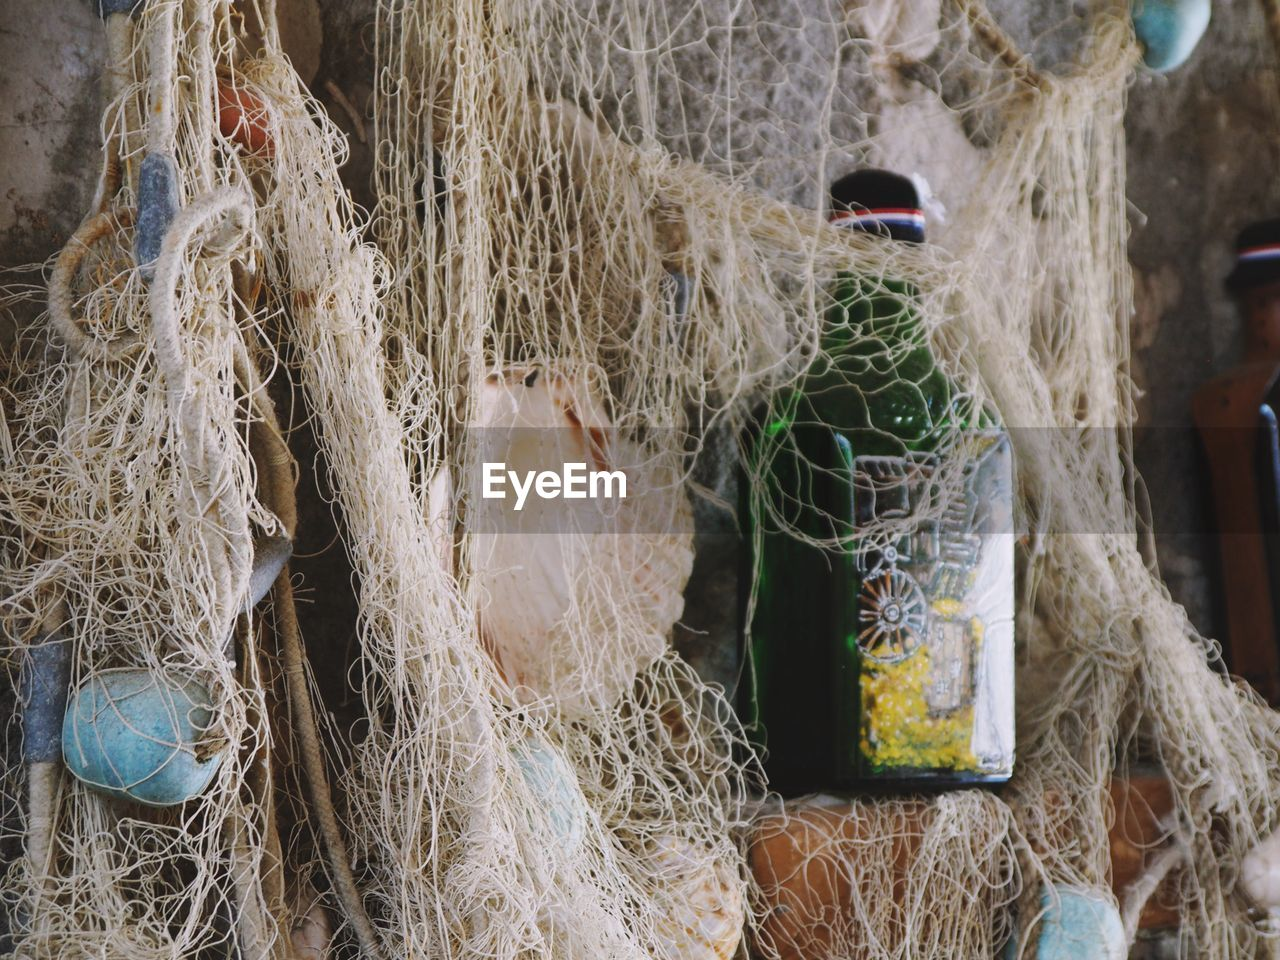 no people, fishing net, close-up, fishing industry, fishing, hanging, day, rope, commercial fishing net, backgrounds, outdoors, still life, string, full frame, for sale, rod, buoy, art and craft, white color, wall - building feature, complexity